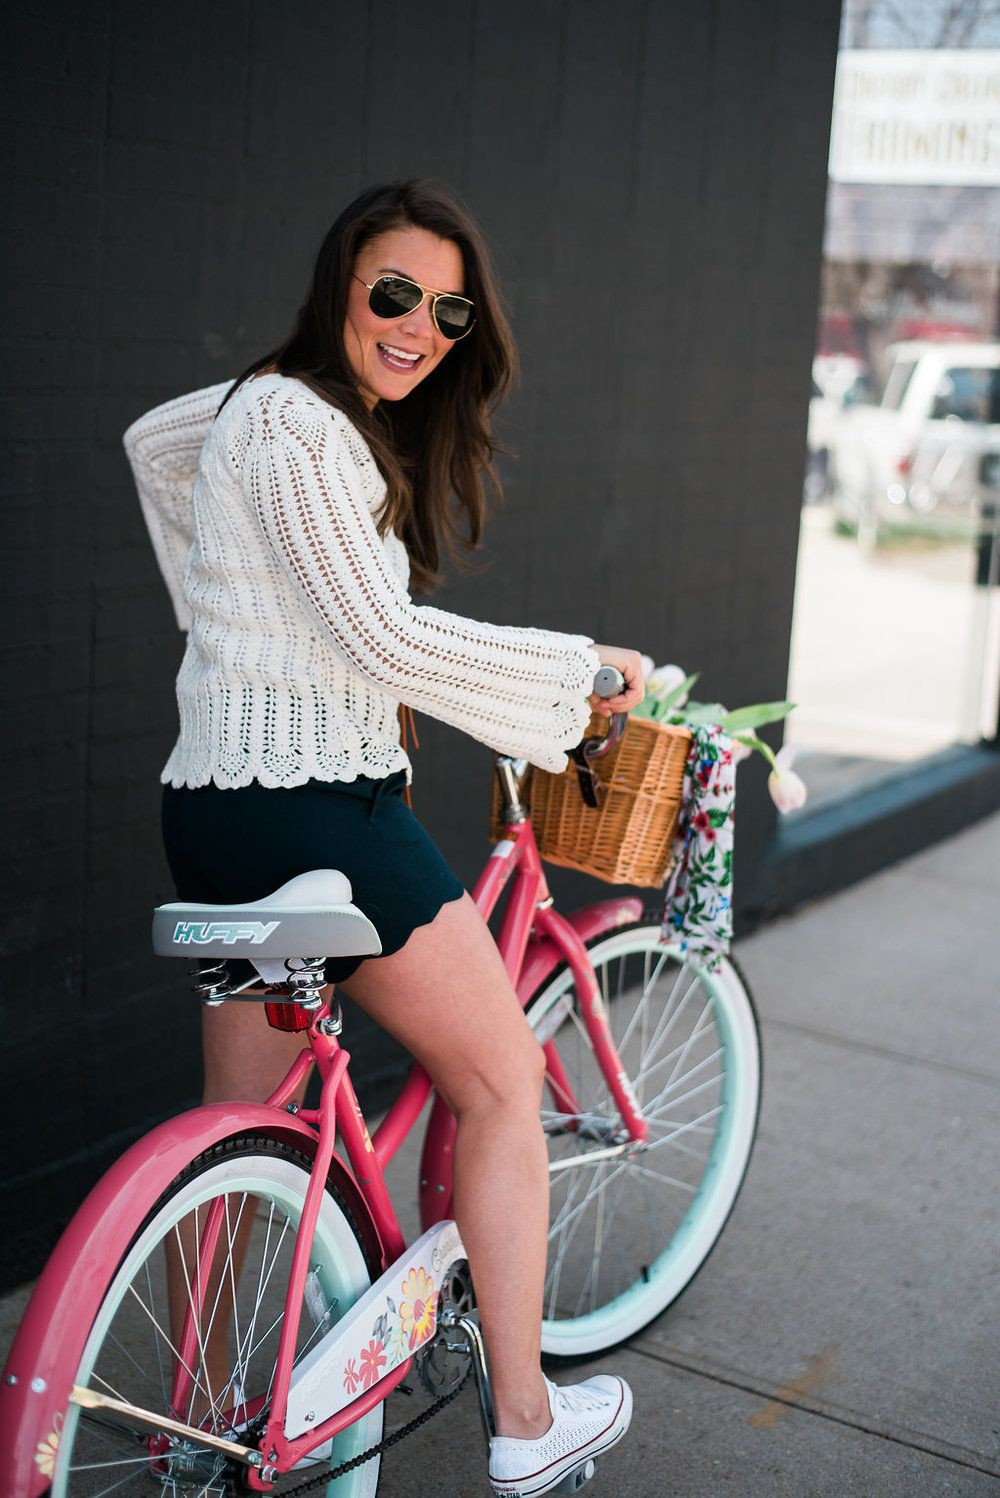 Outfits With Black Shorts, Denver Darling Boutique, Road bicycle